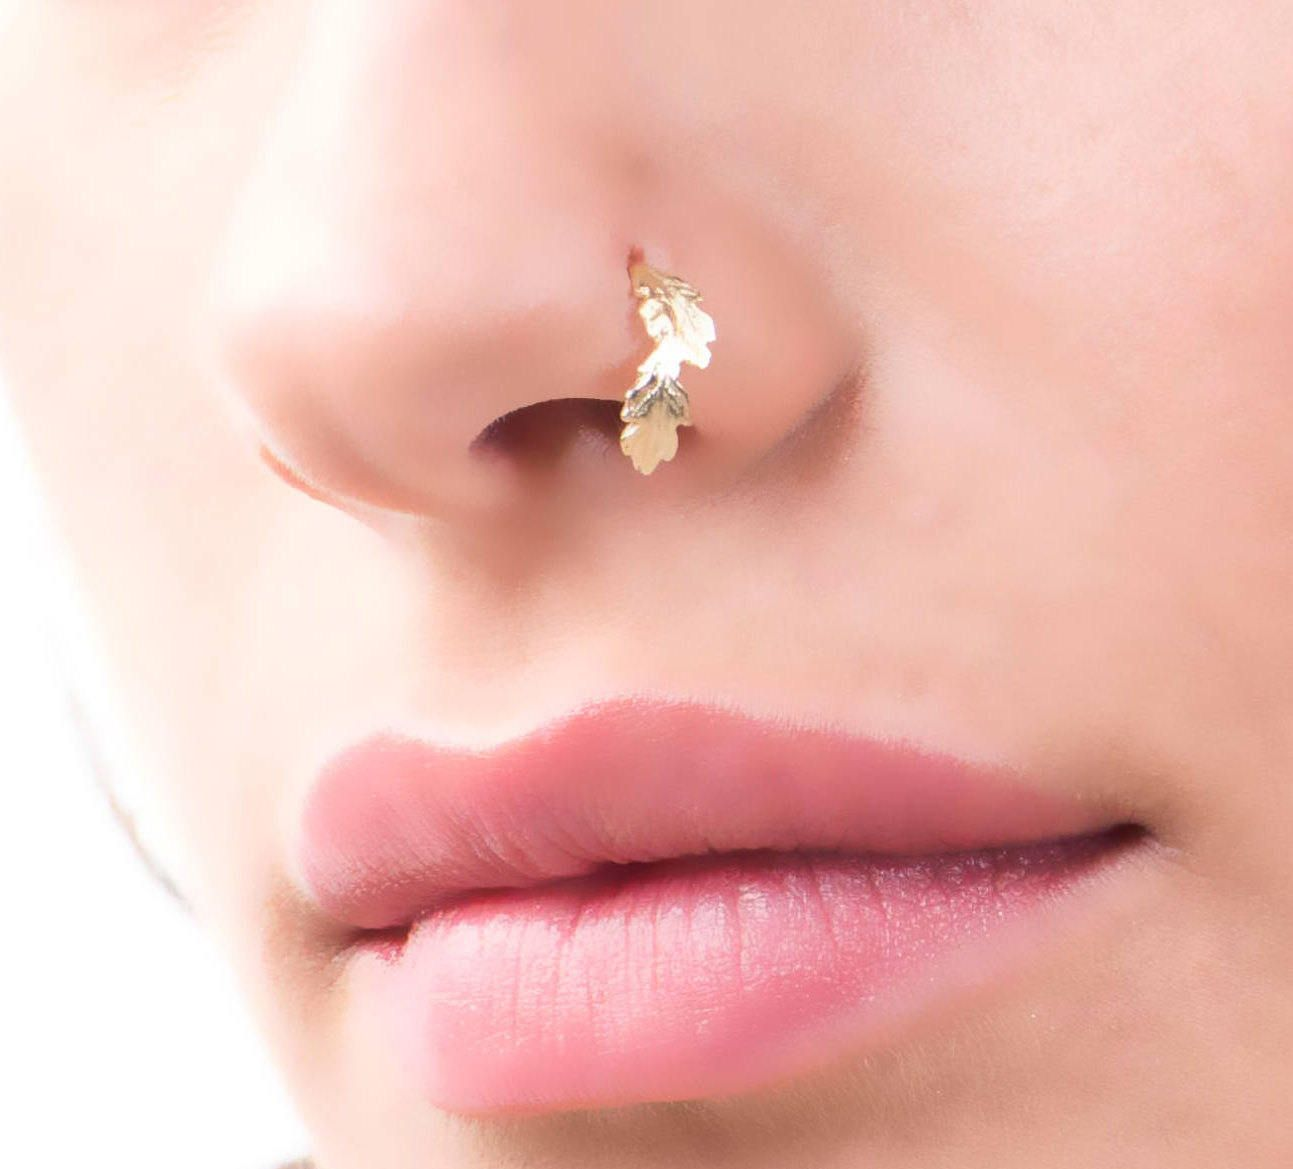 dd5c77829e3 Unique Nose Ring, Nose Ring, Nose Piercing, Nose Stud, Indian Nose ...